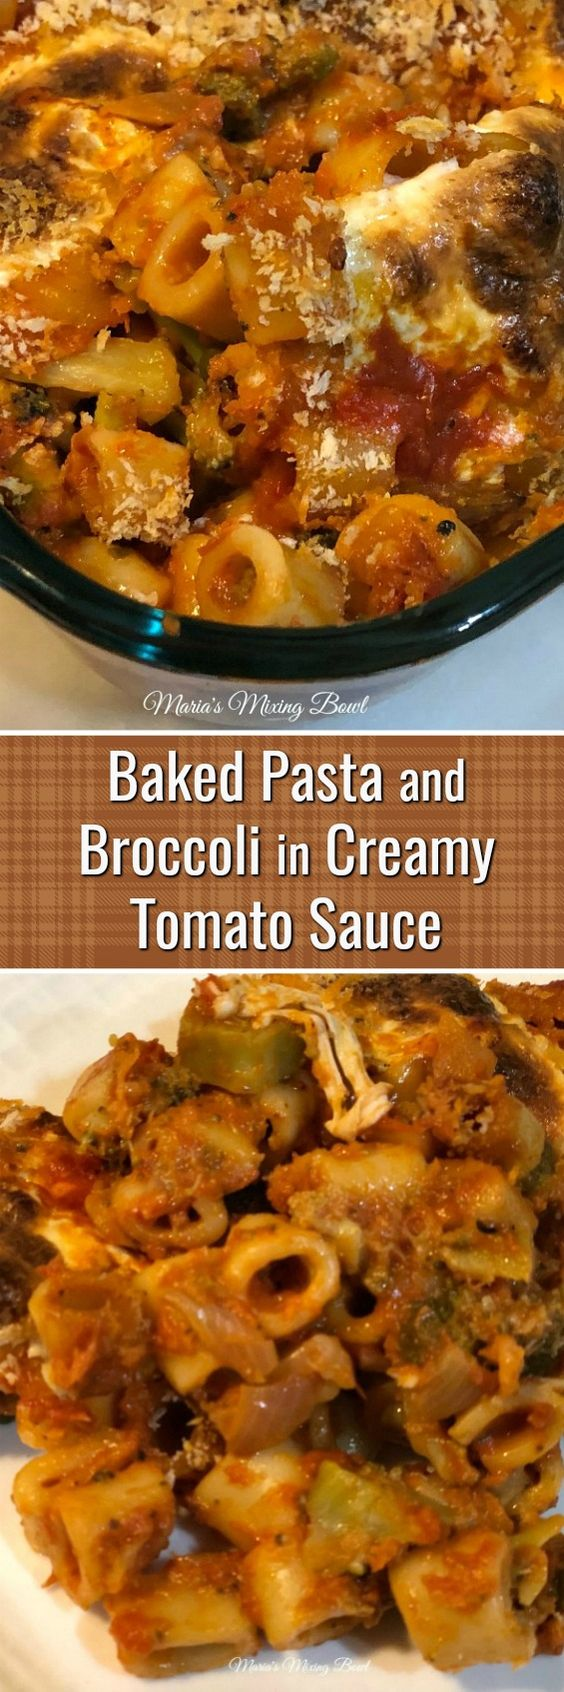 Baked Pasta and Broccoli in Creamy Tomato Sauce - A rich creamy tomato sauce , al dente pasta, broccoli and fresh mozzarella cheese bring this easy dish together for a perfect weeknight meal.